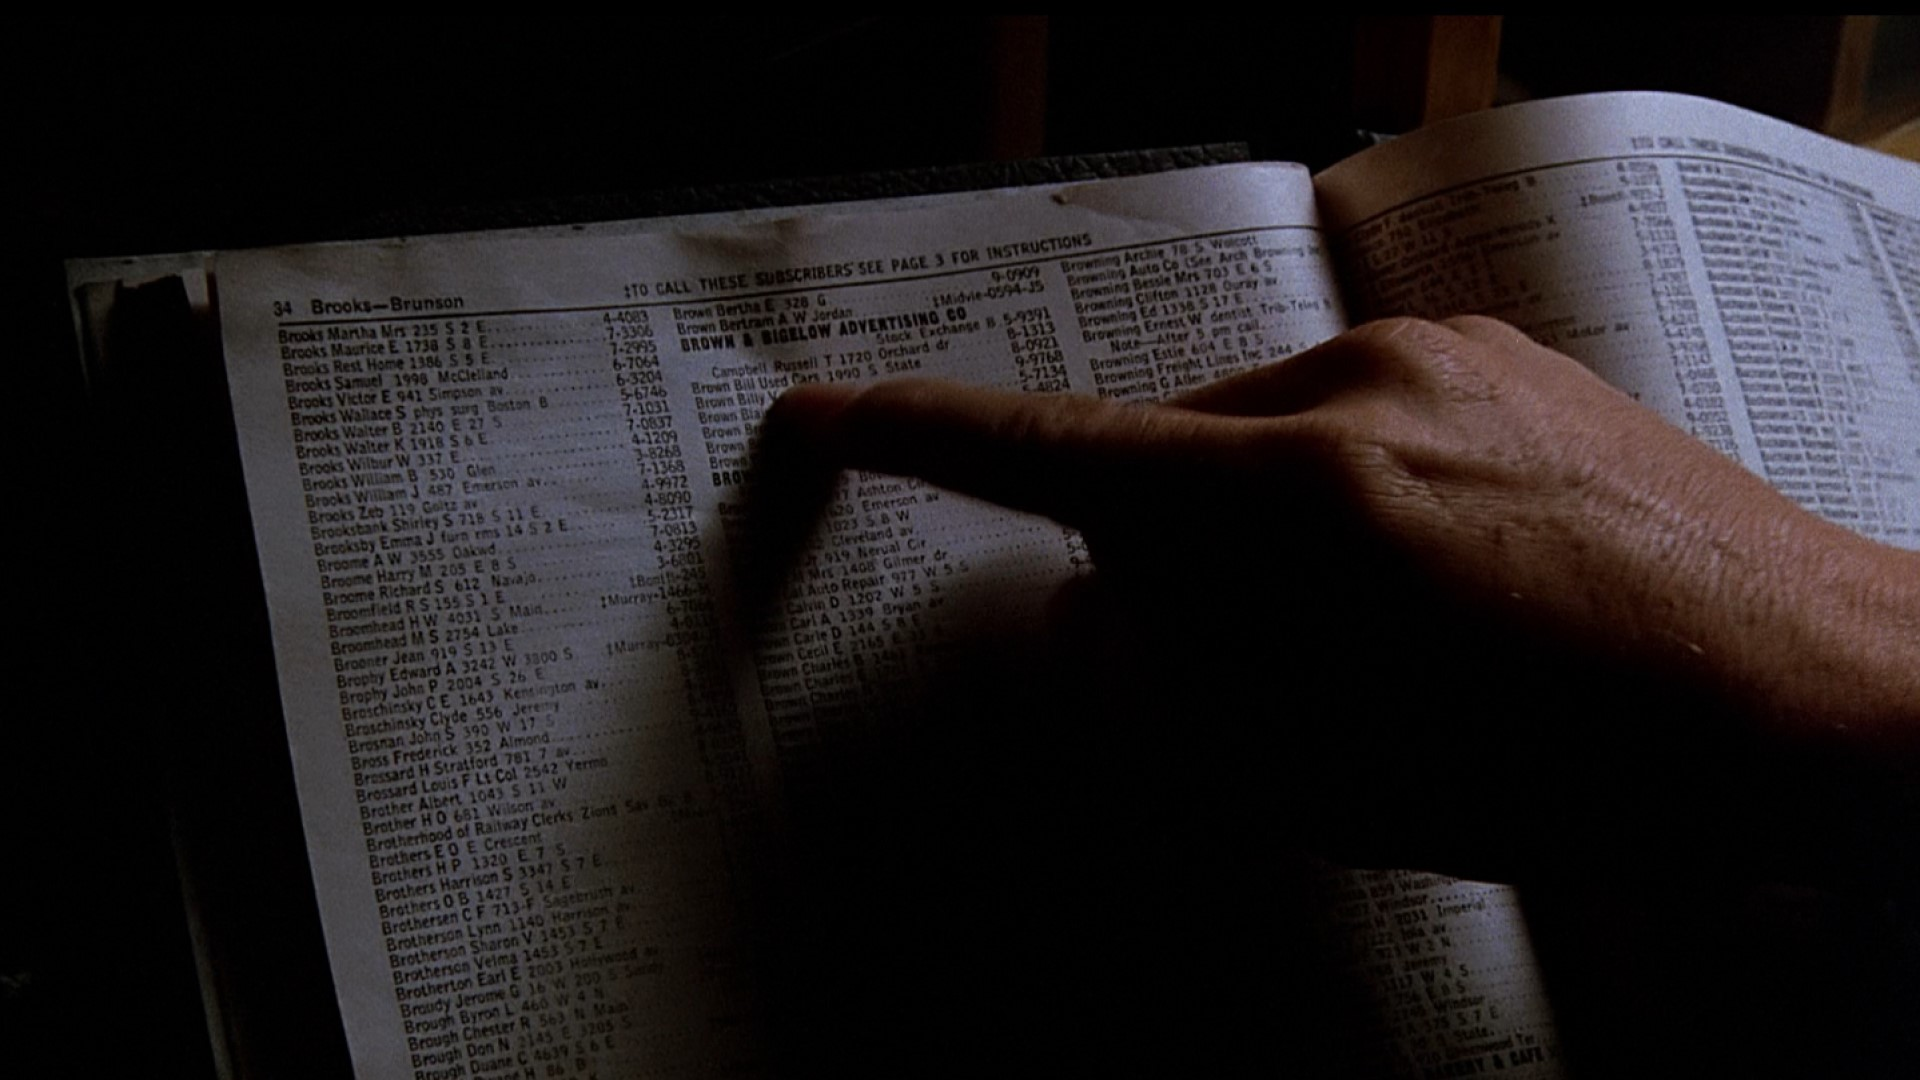 BACK TO THE FUTURE (1985) - Torn Phone Book Page - Image 6 of 8